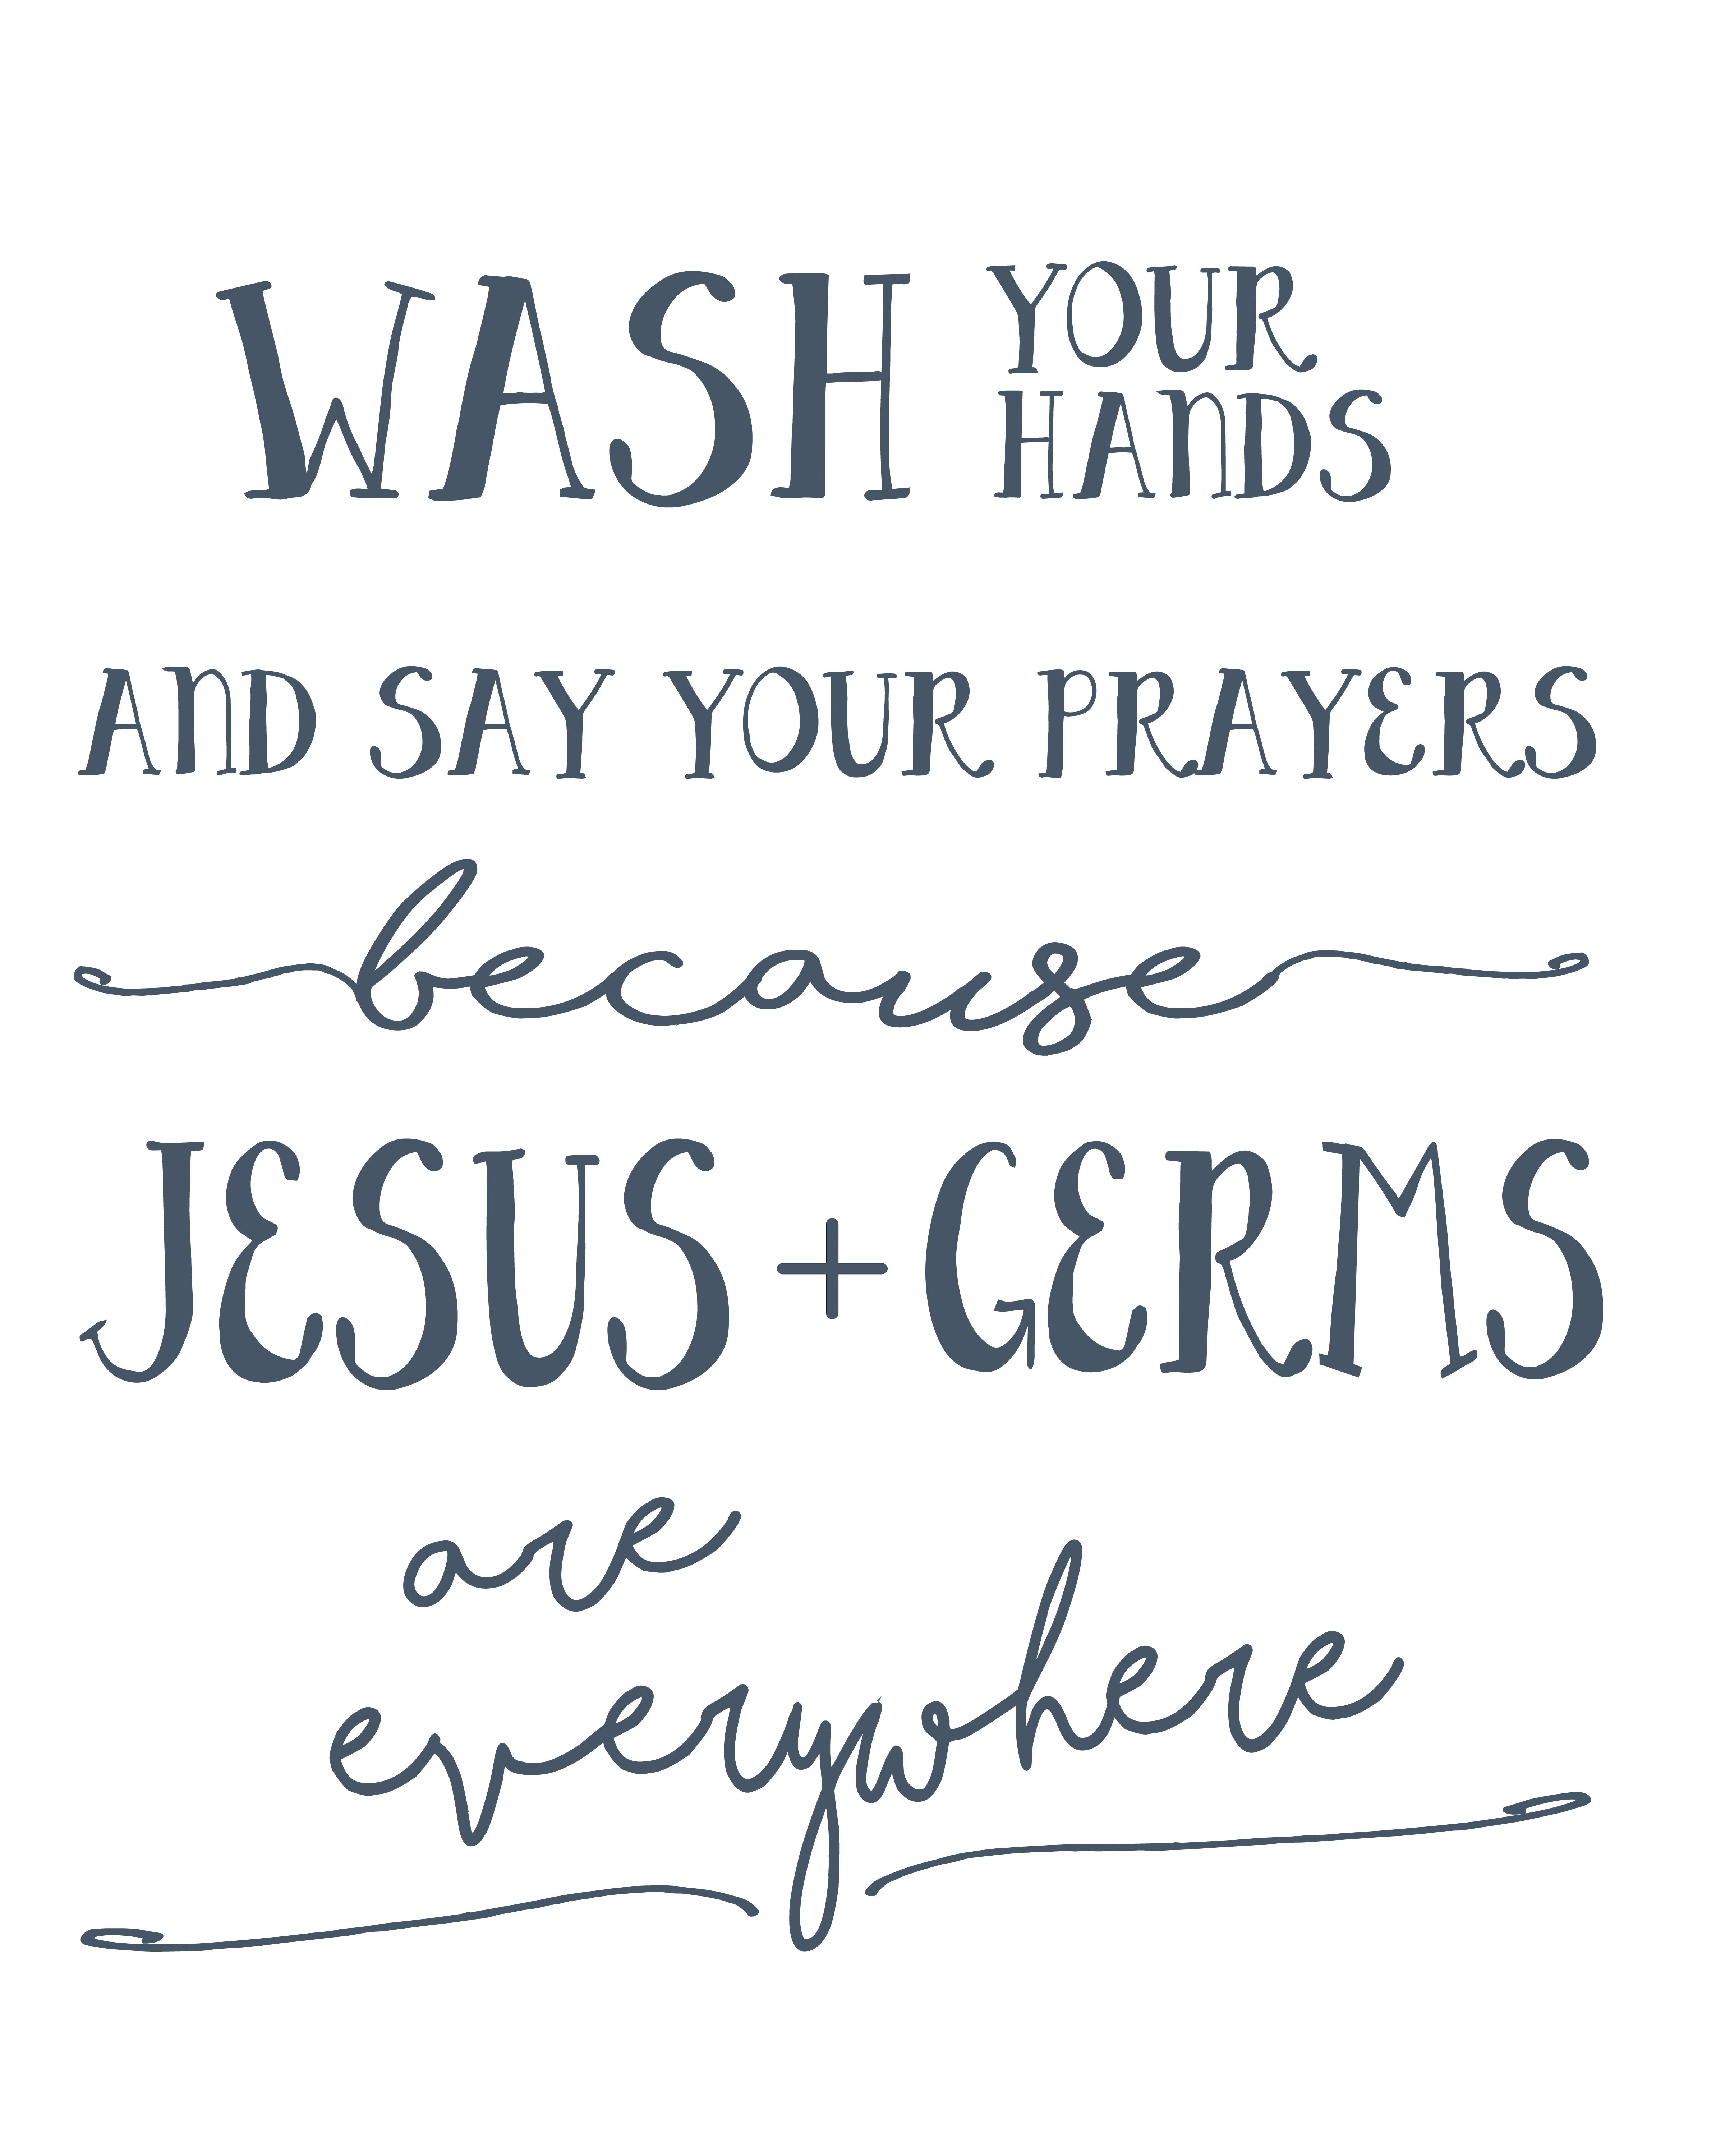 For The Girls Bathroom Wash Your Hands And Say Your Prayers Free - Wash Your Hands And Say Your Prayers Free Printable